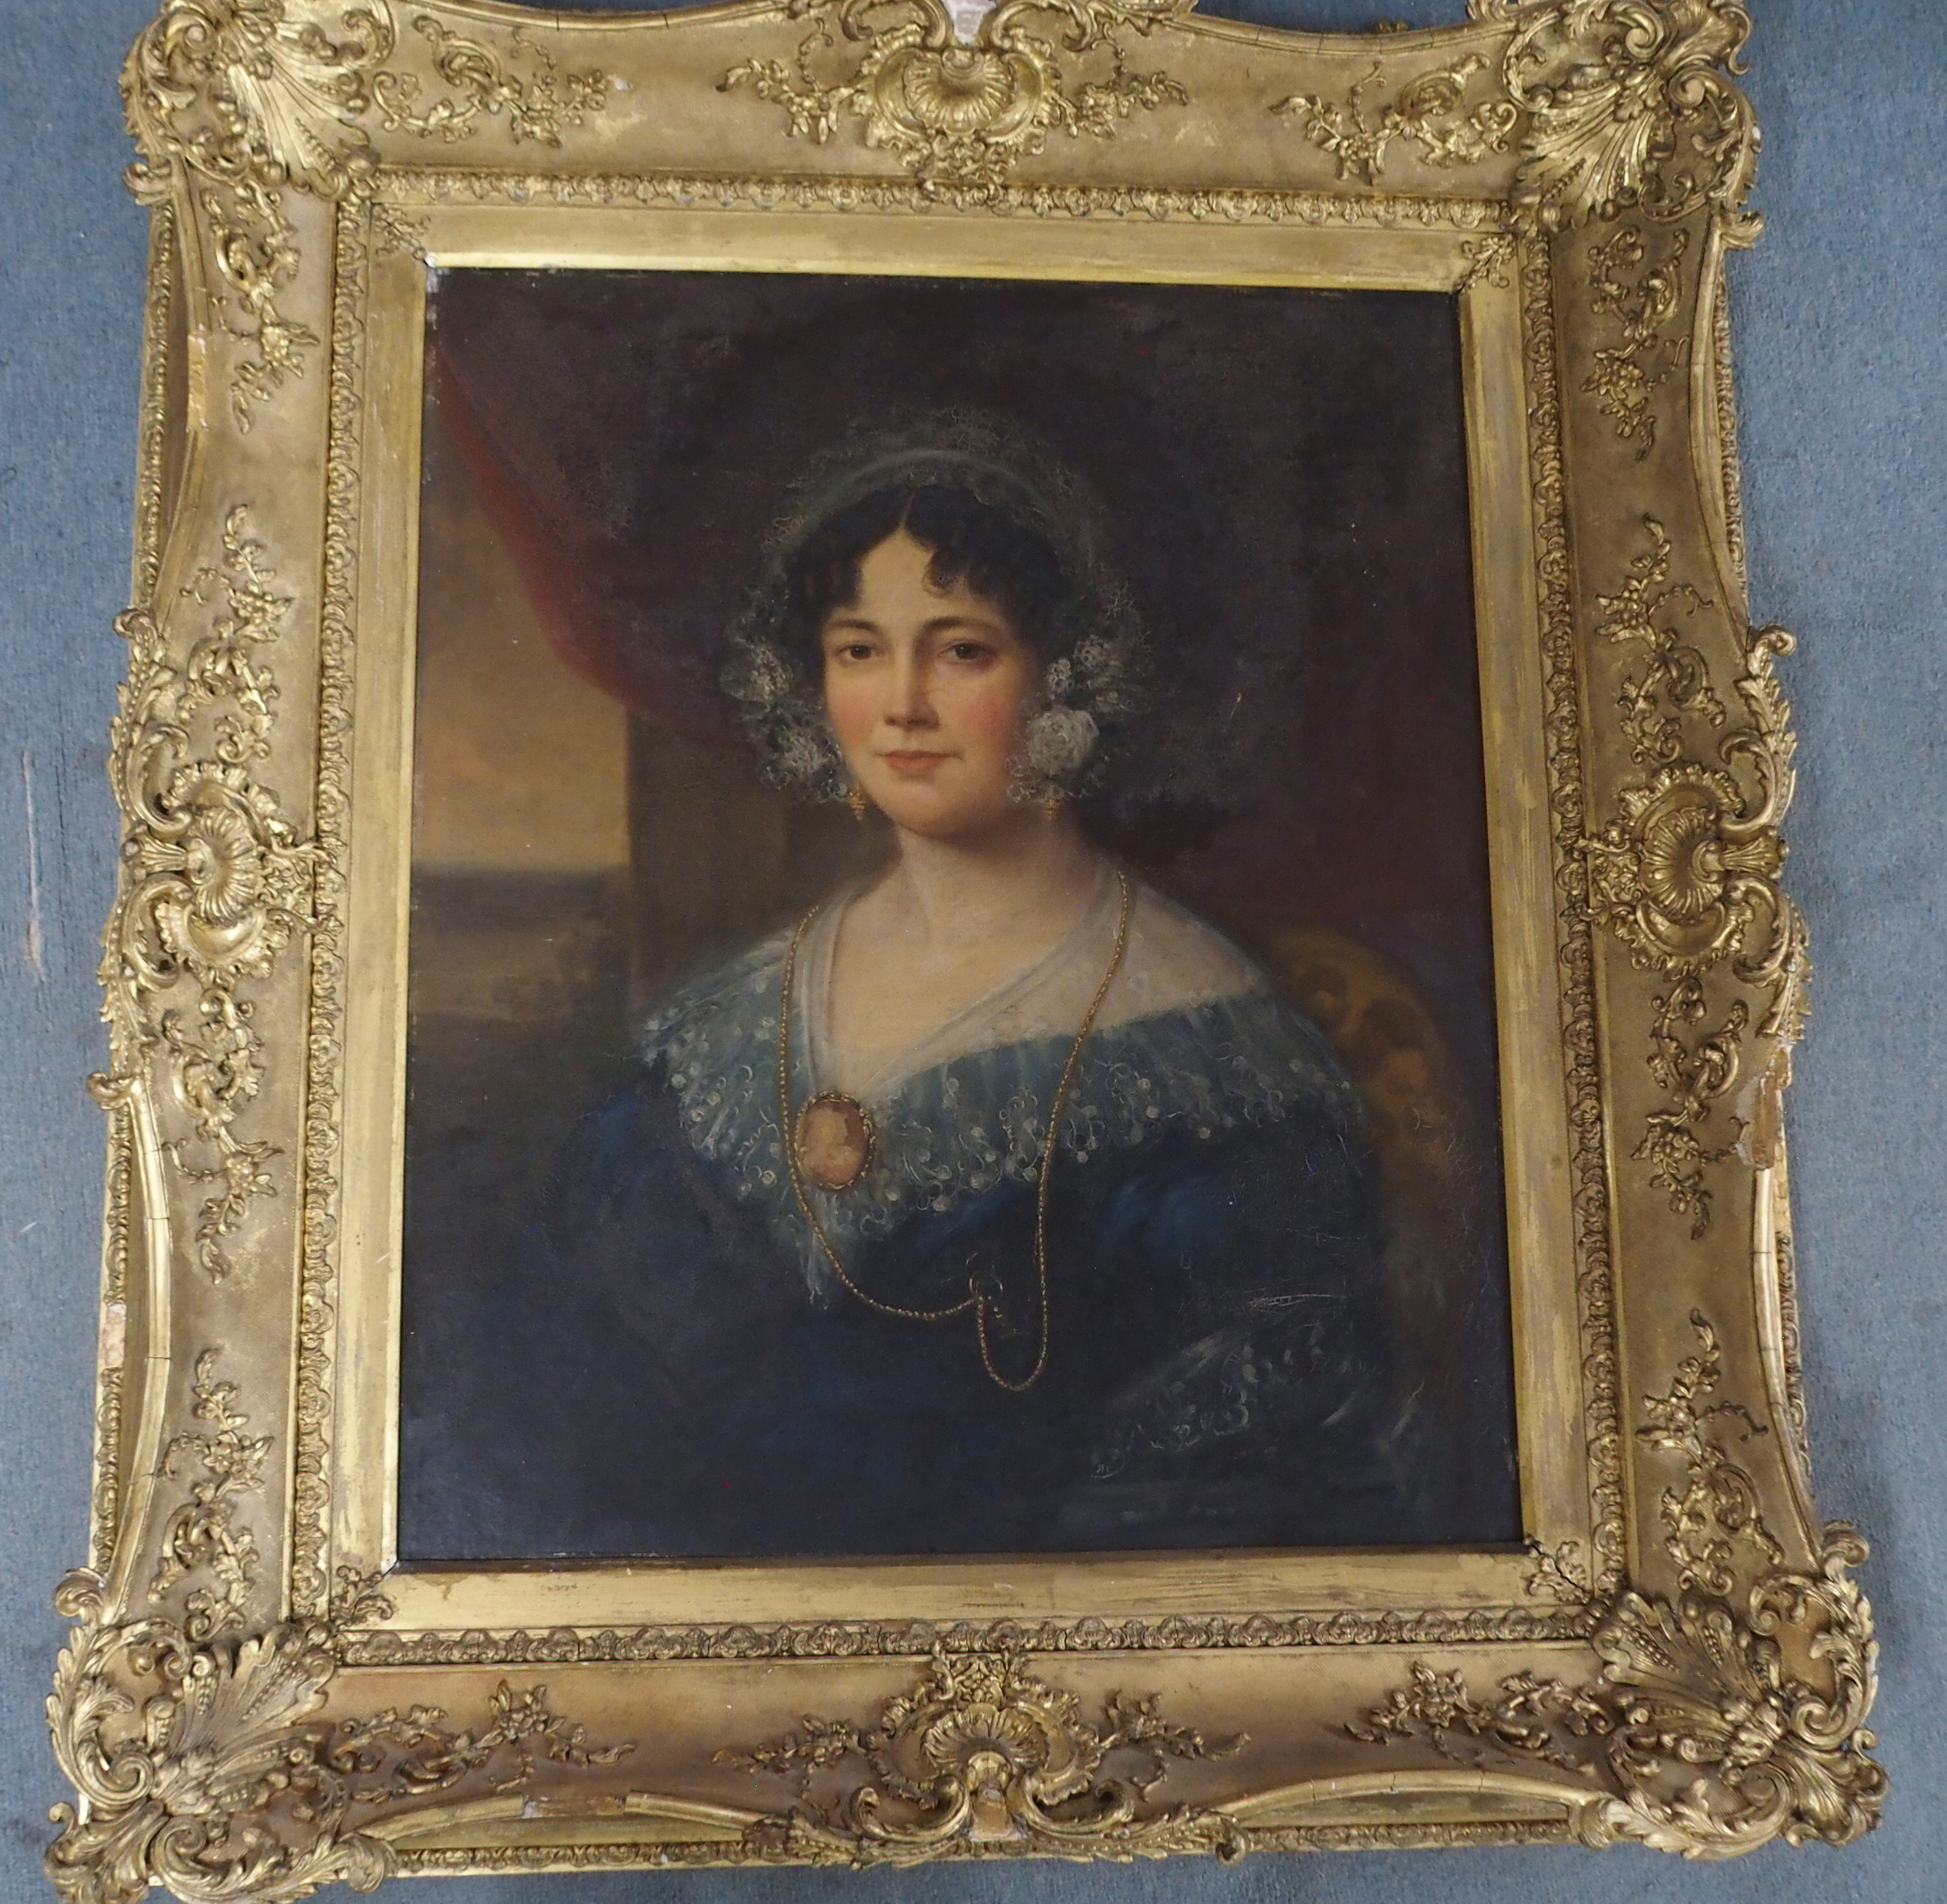 BRITISH SCHOOL (19TH CENTURY) PORTRAIT OF A LADY IN A BLUE DRESS AND LACE CAP Oil on canvas, 76 x - Image 4 of 5